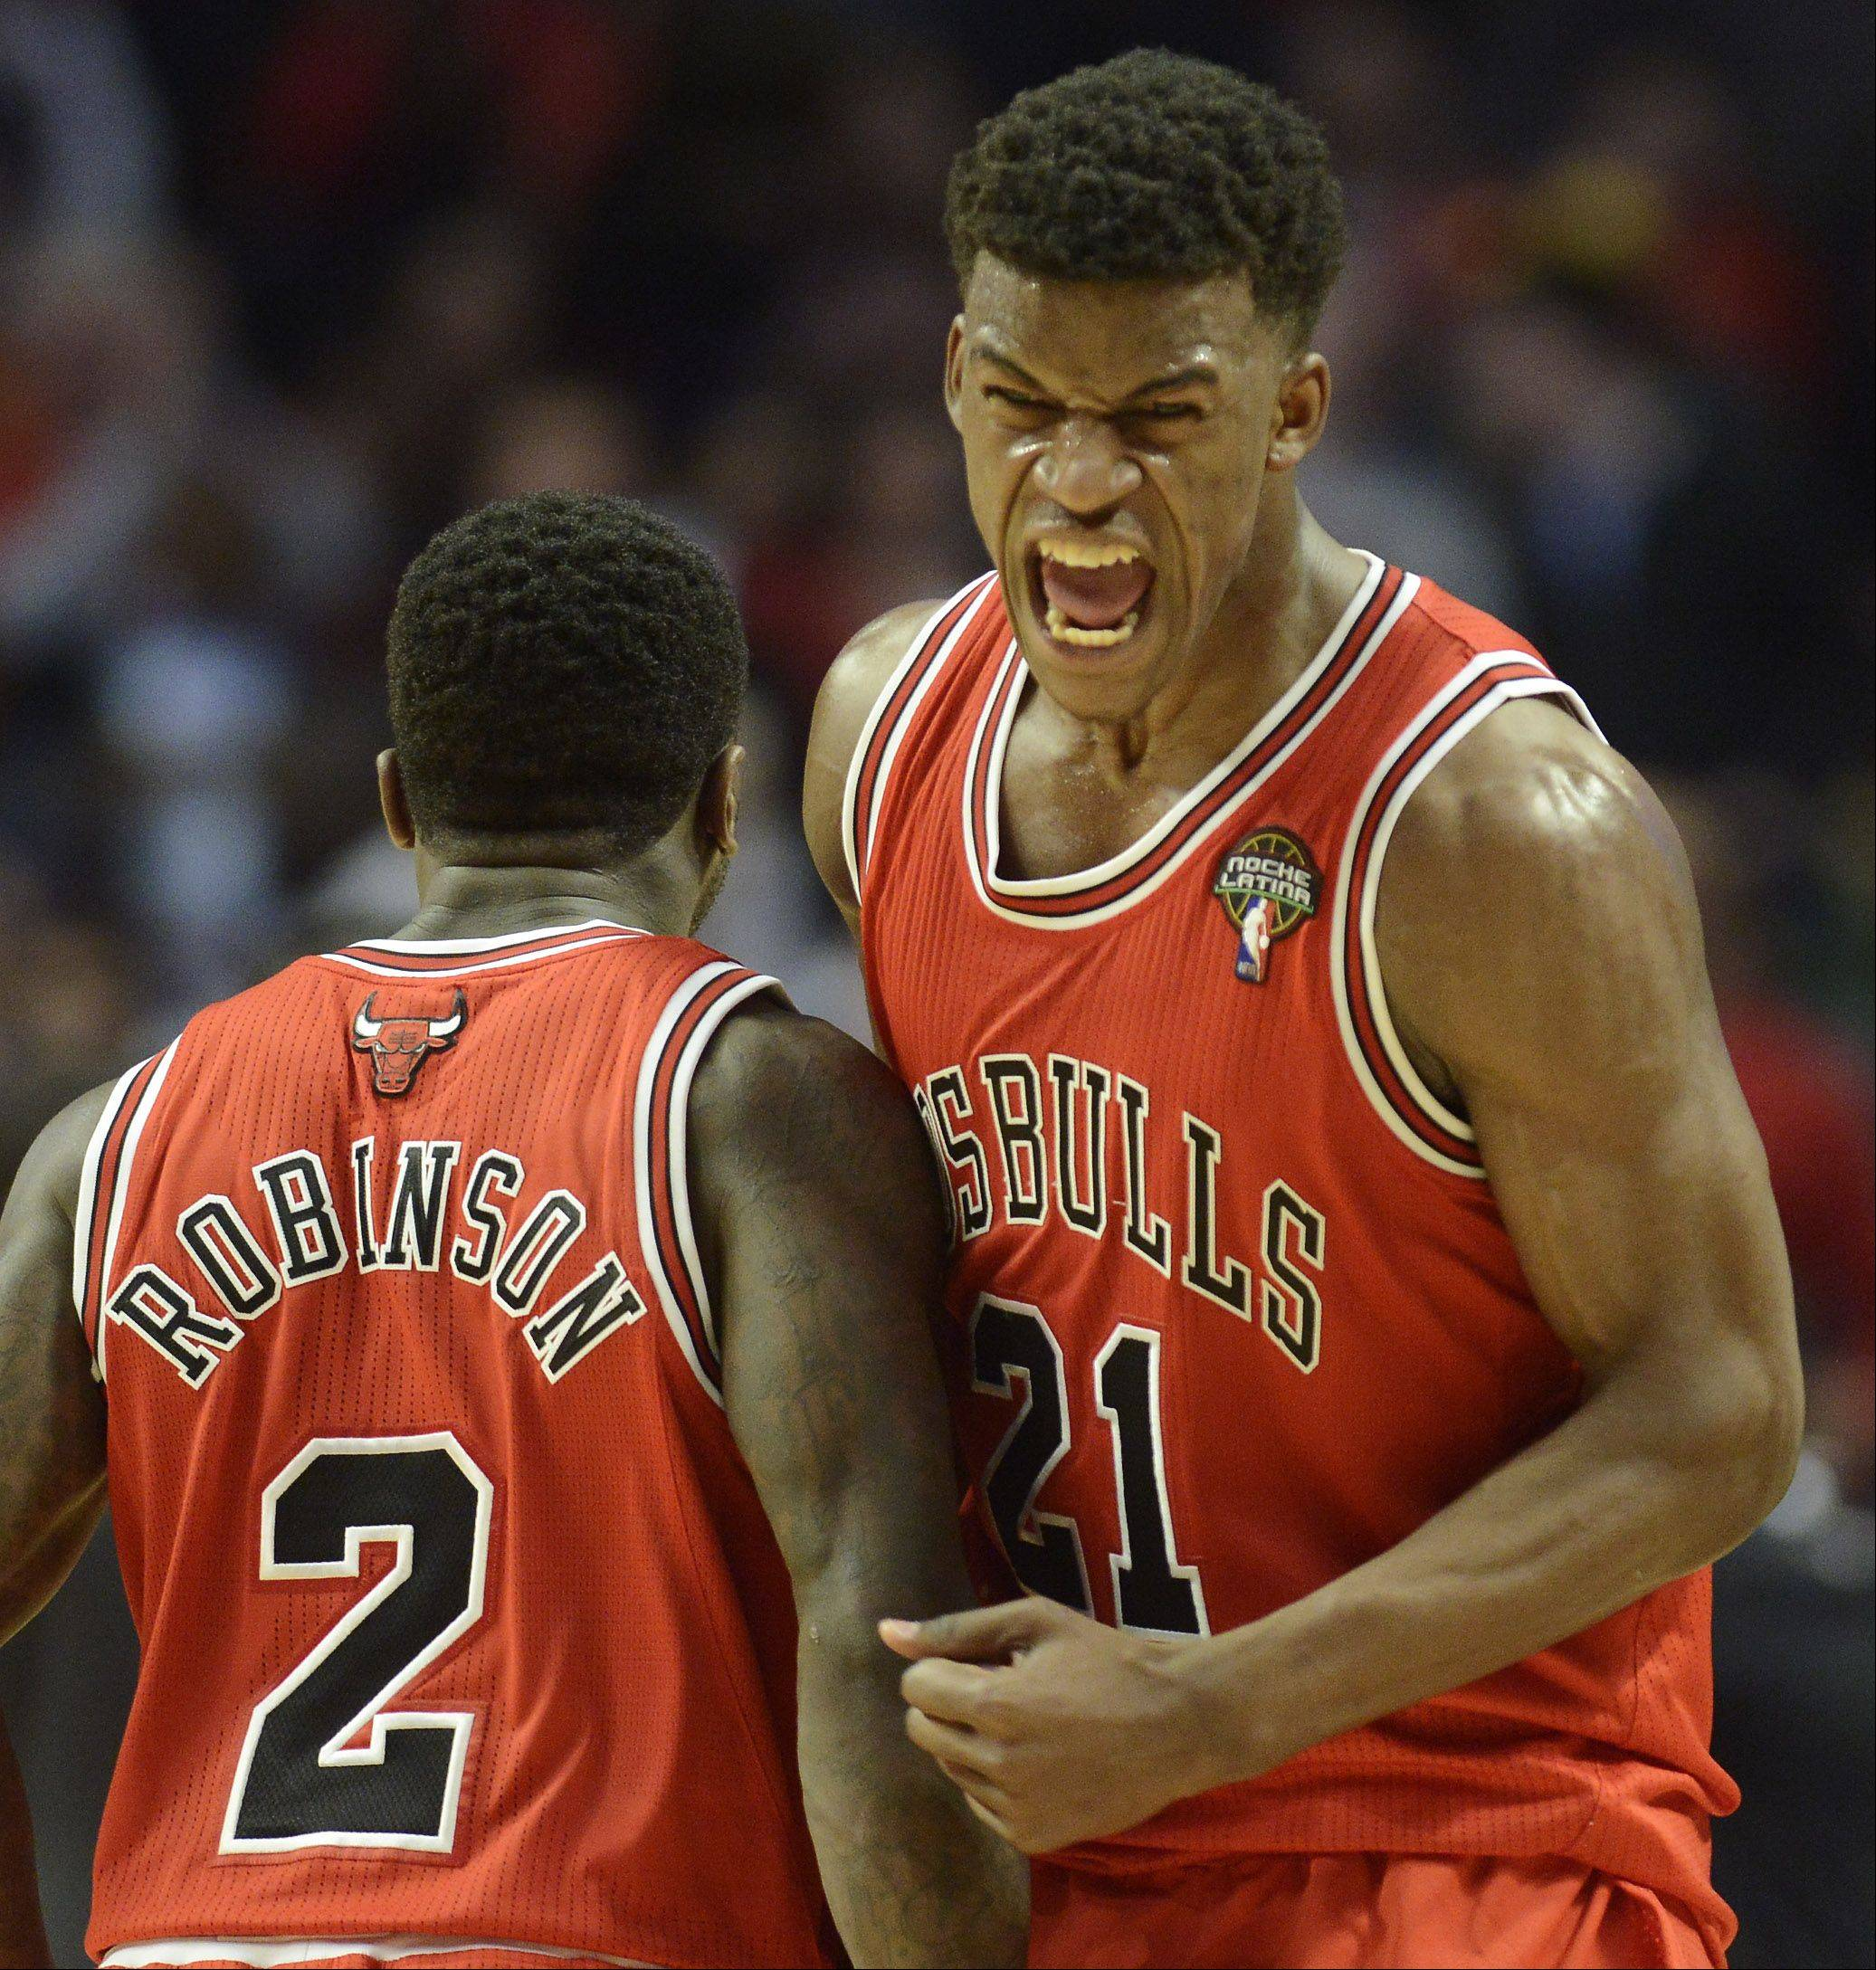 Jimmy Butler of the Bulls celebrates a big dunk against the Heat Wednesday.